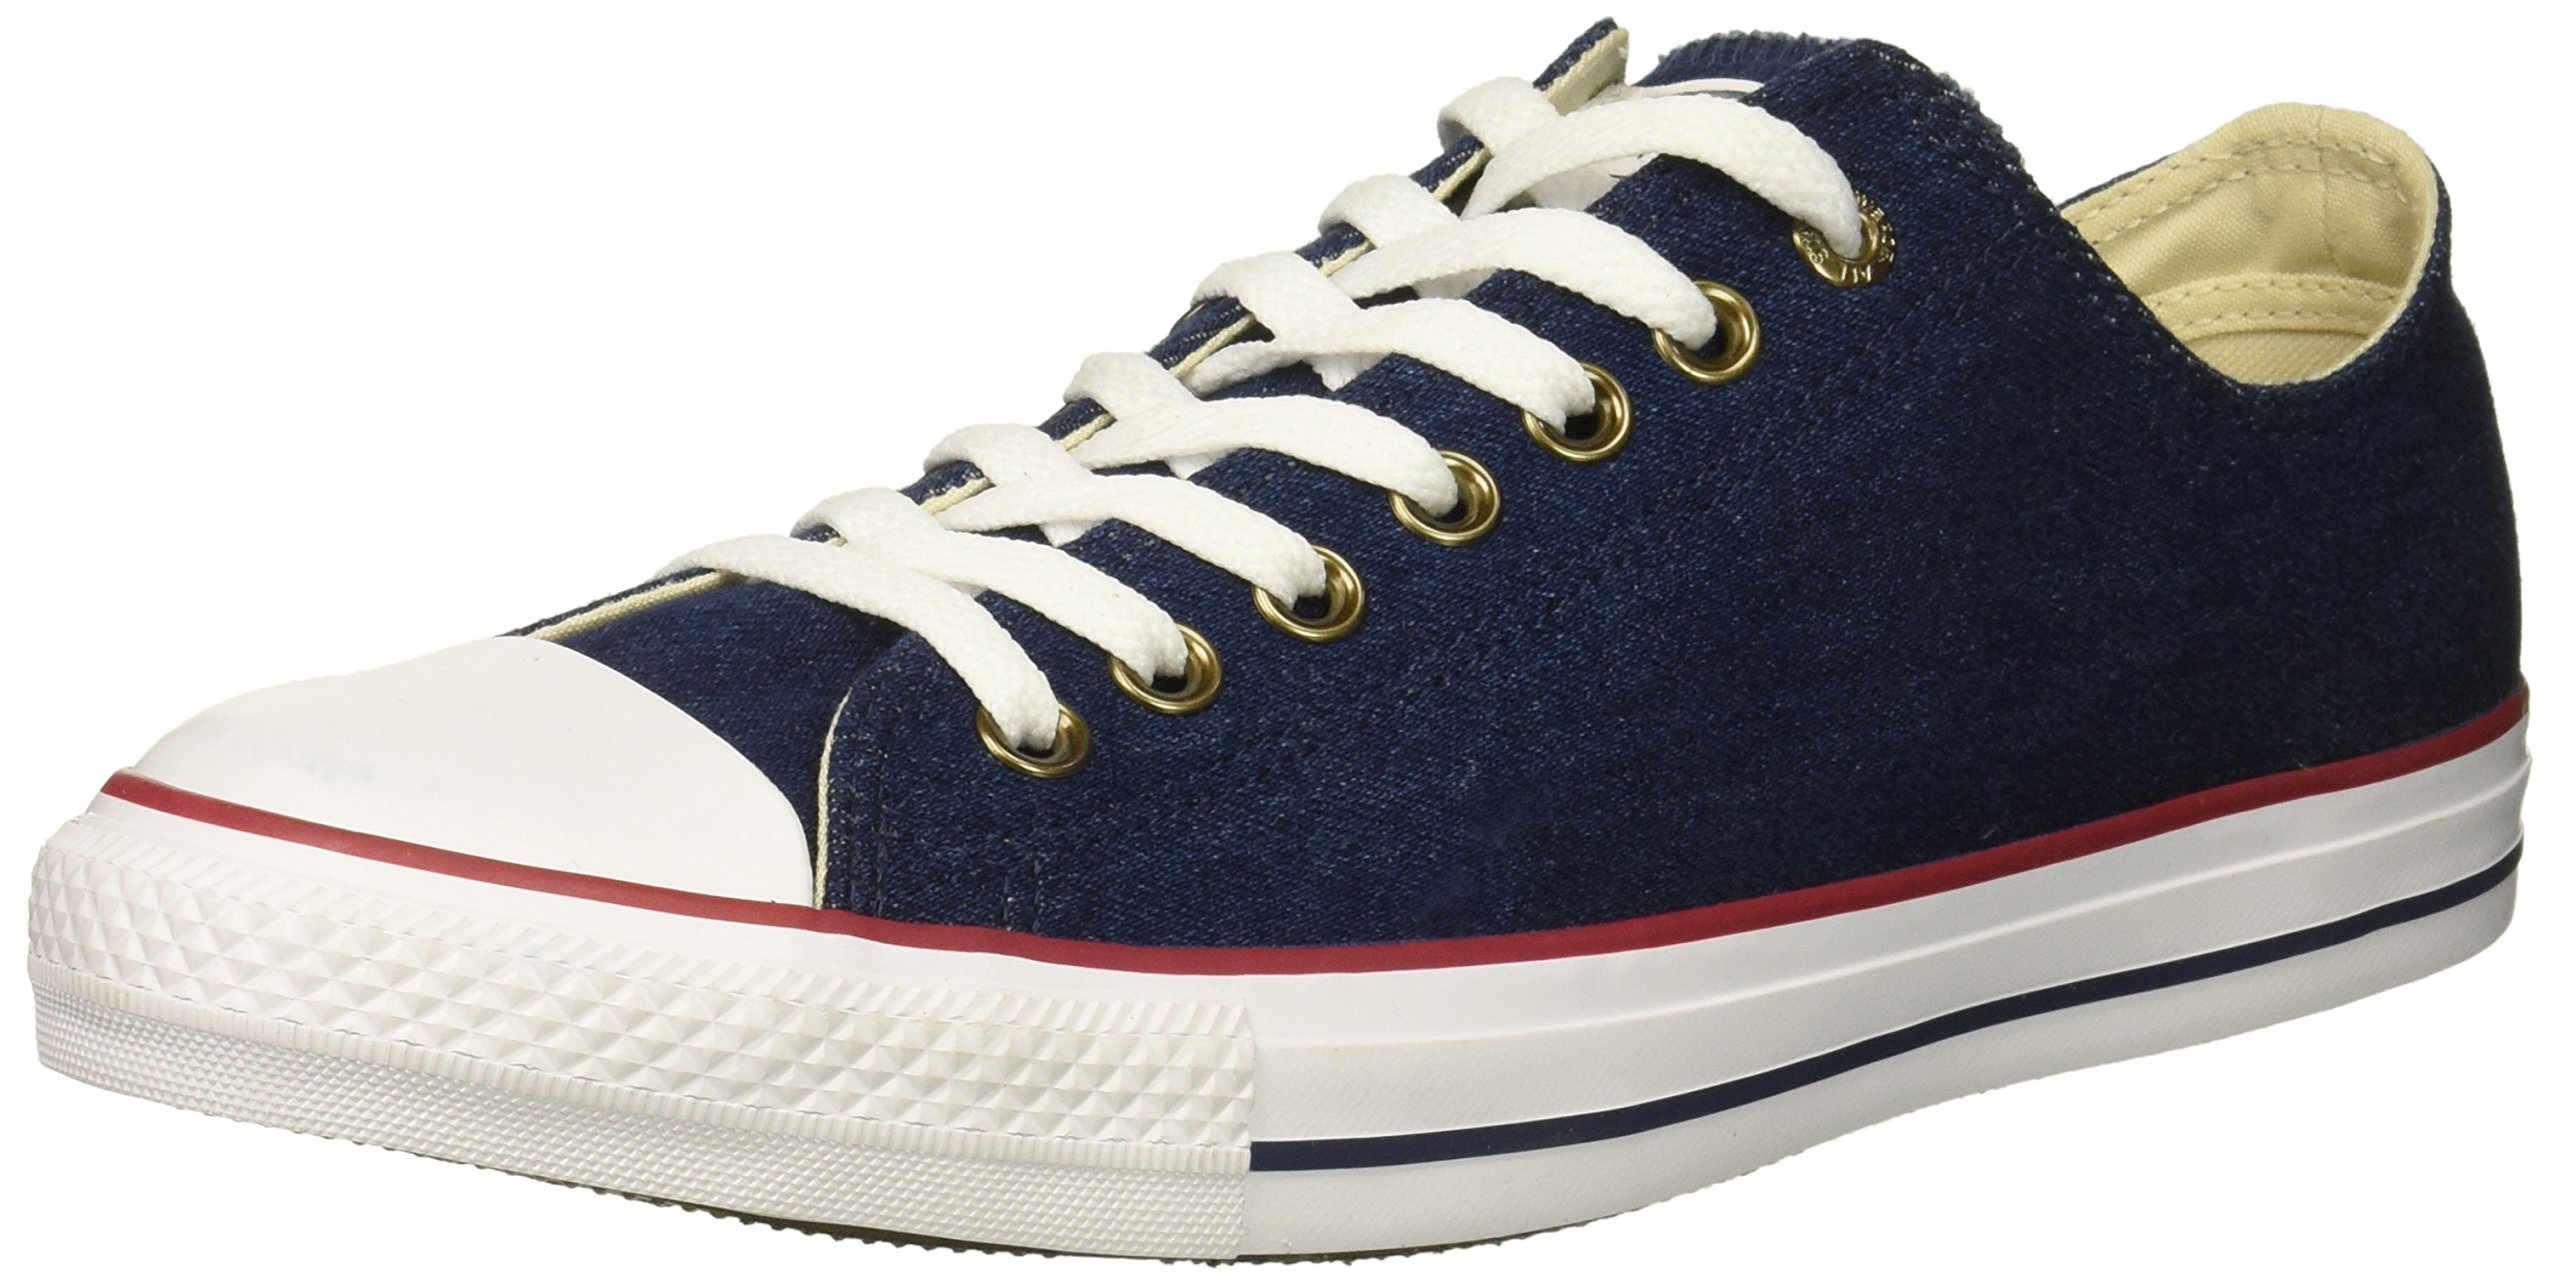 Converse Chuck Taylor All Star Denim Low Top Sneaker, Dark Blue/Natural Ivory/White, 9 M US